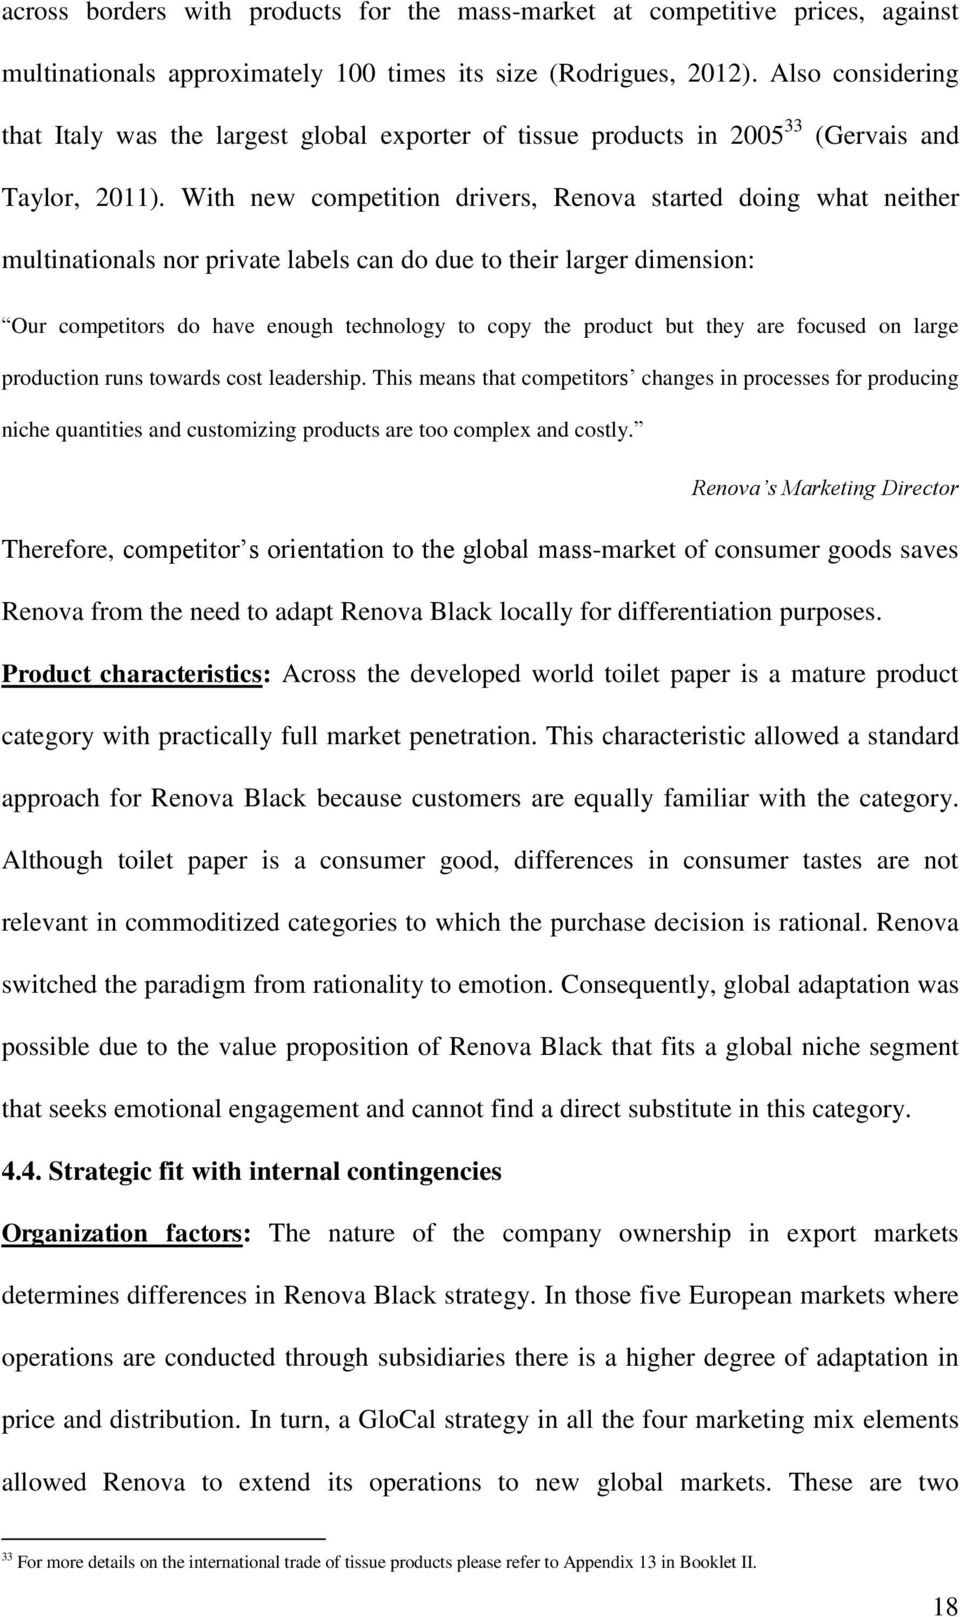 With new competition drivers, Renova started doing what neither multinationals nor private labels can do due to their larger dimension: Our competitors do have enough technology to copy the product